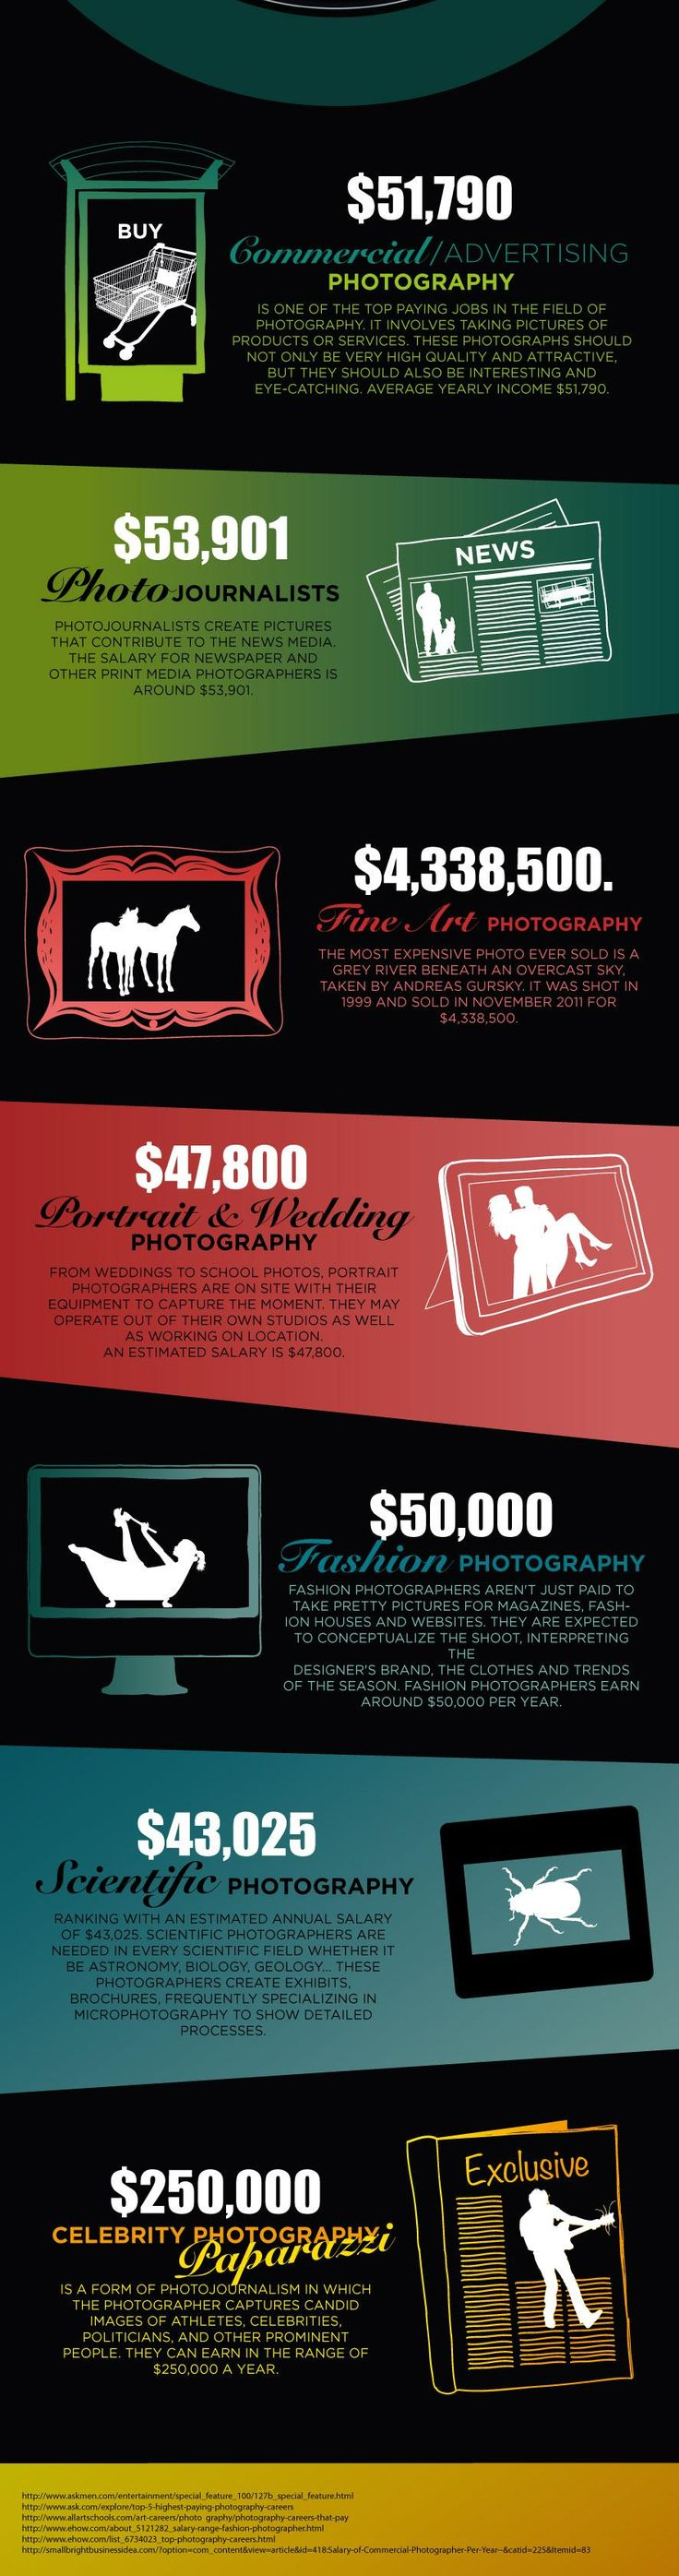 Top Paying Photography Jobs